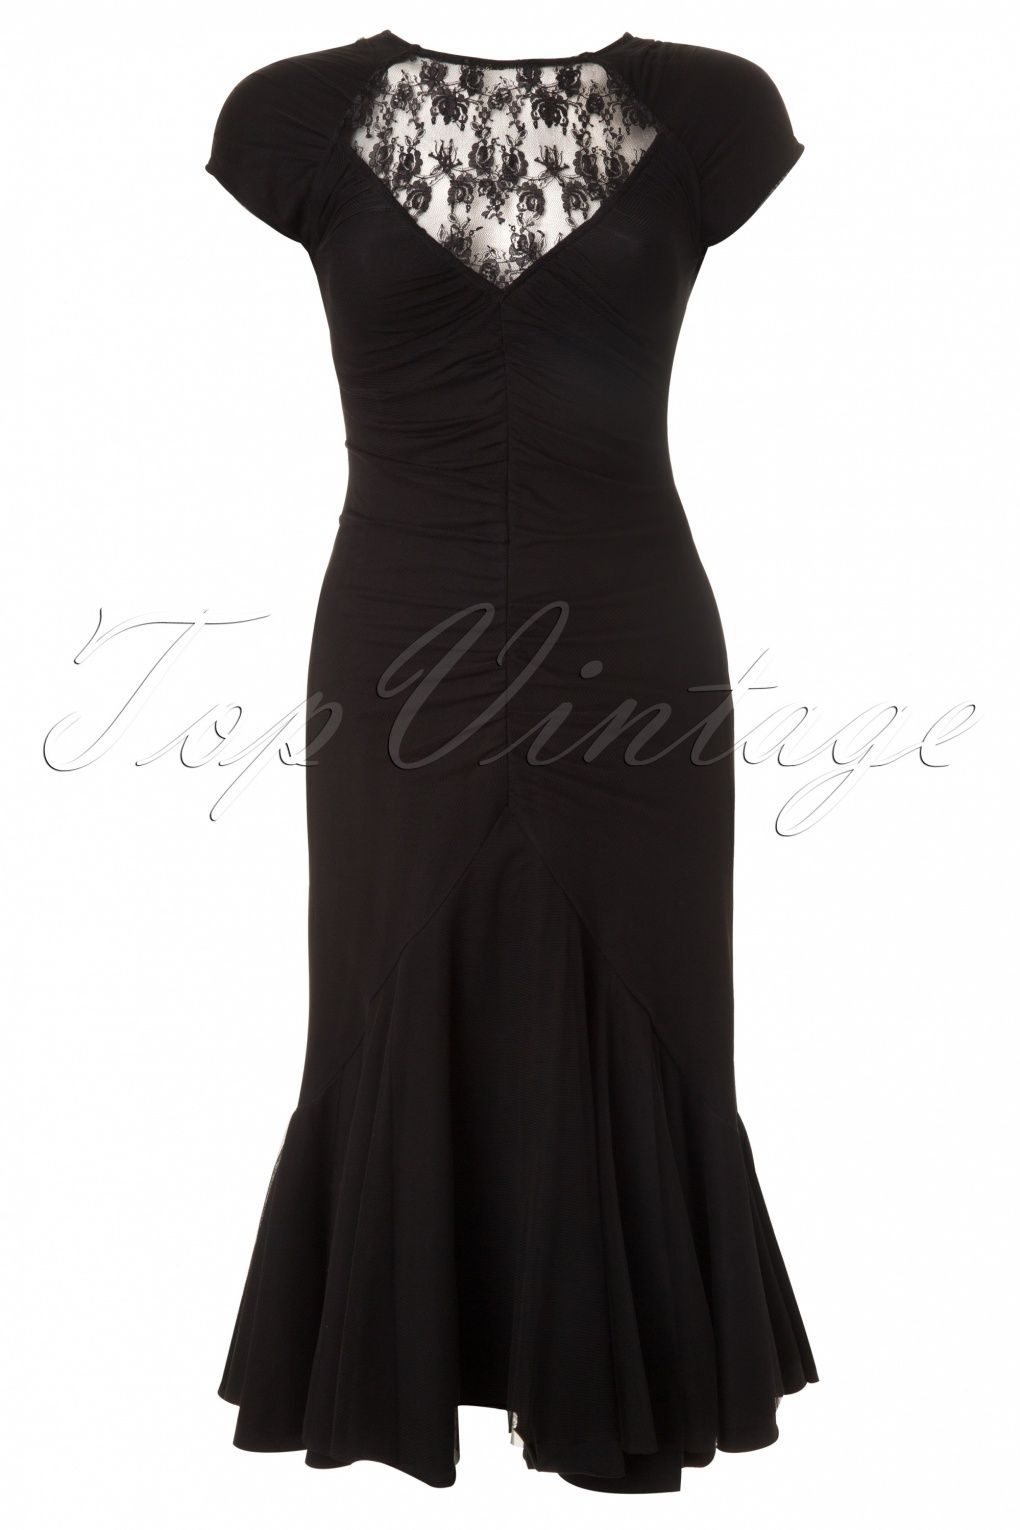 Spin Doctor - 1930s Ariana Black Lace Fishtail Dress | The little ...